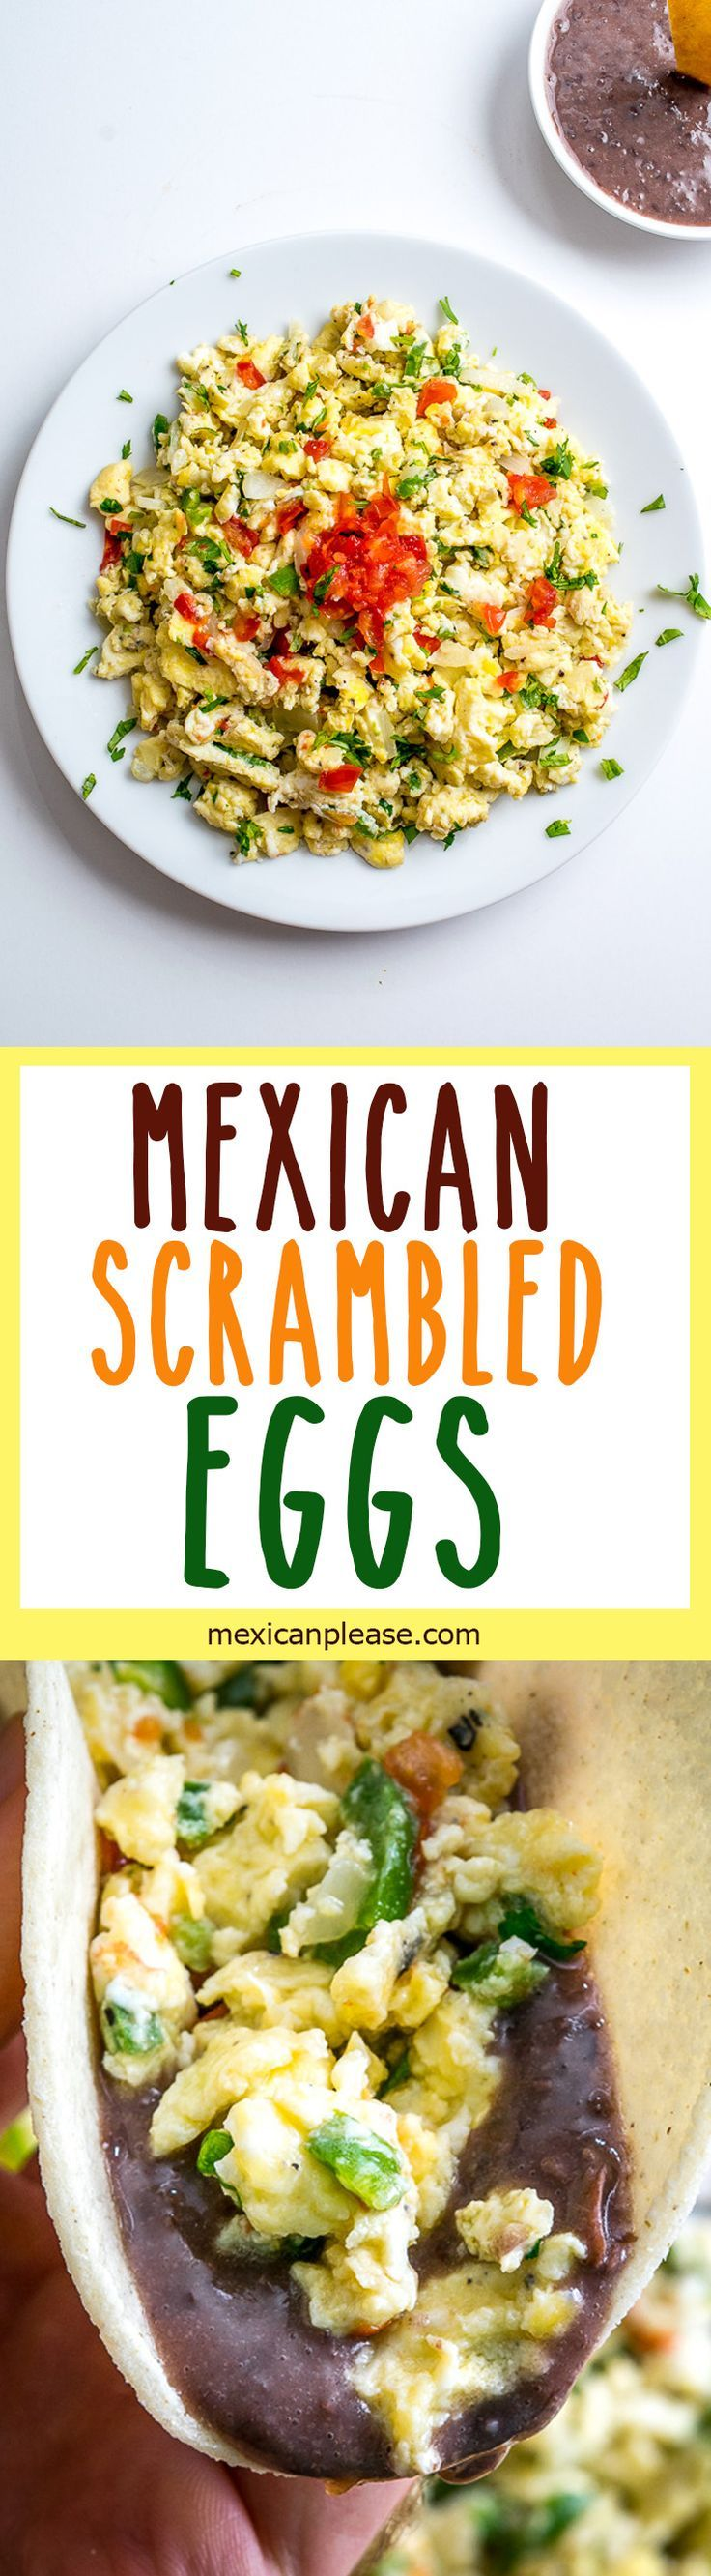 These Mexican Scrambled Eggs are perfect for lazy weekend mornings: well-balanced, easy to make, and they have real kick. Try draining the tomatoes before adding them to the pan, so much better! http://mexicanplease.com